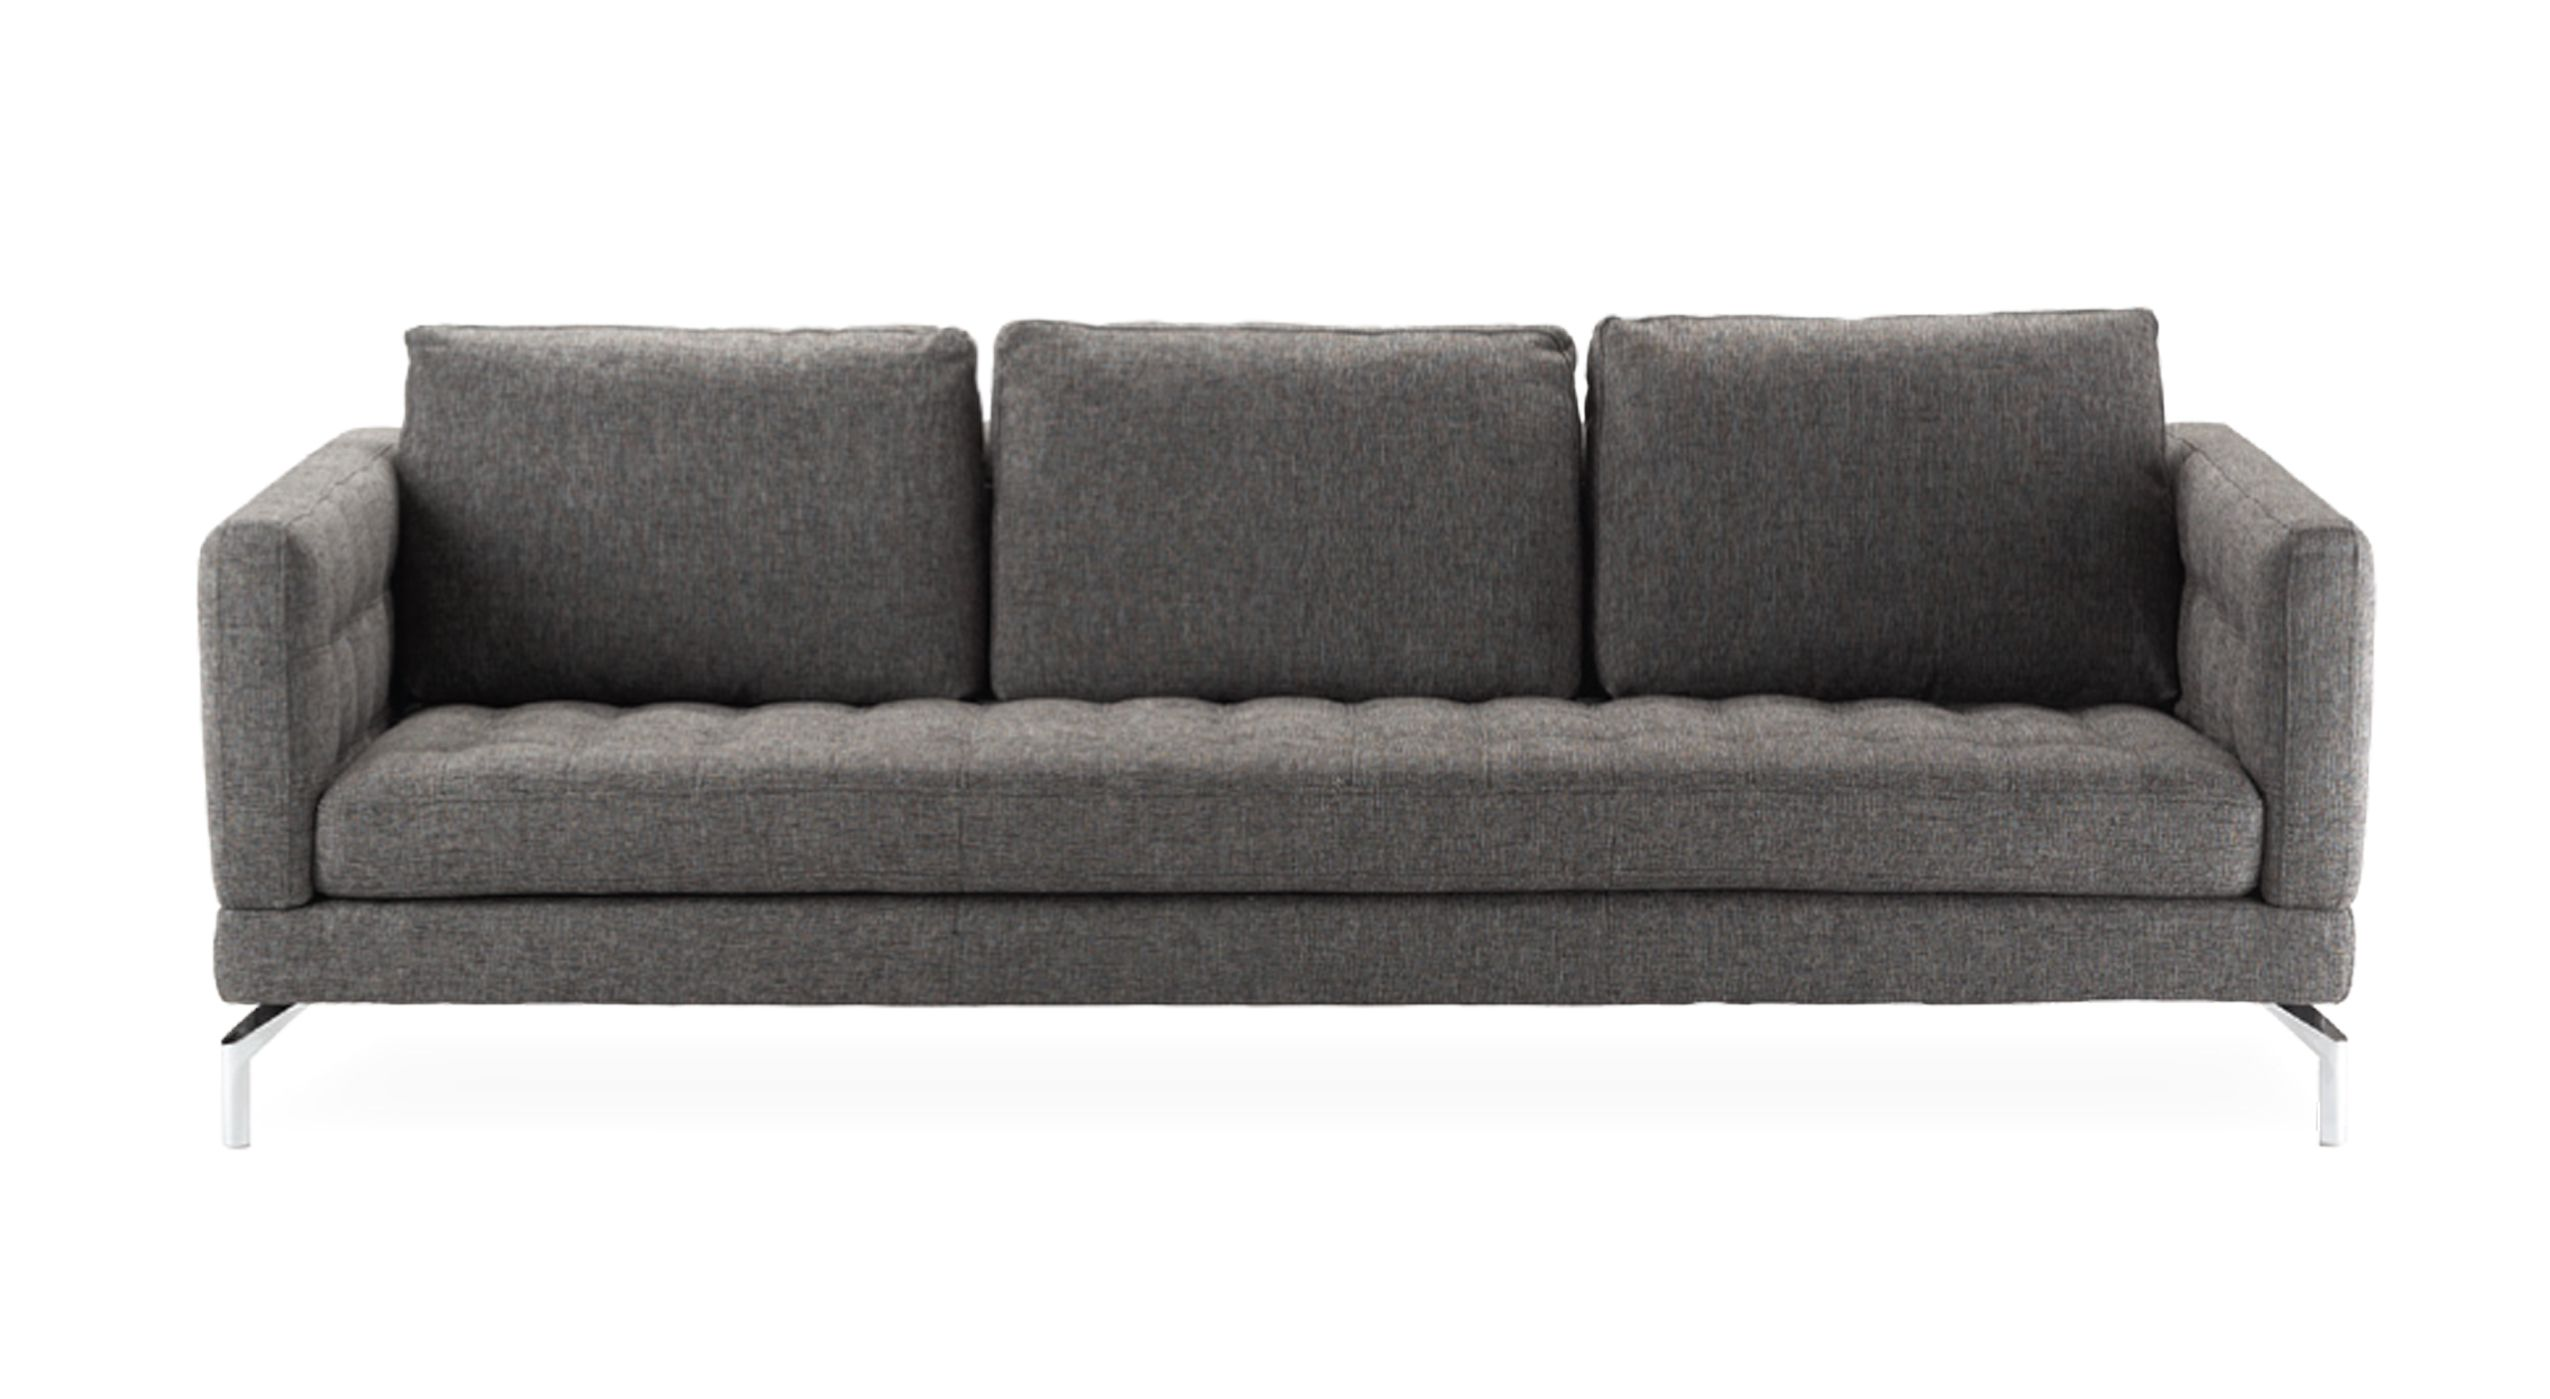 Marvelous Arcadia Sofa In Charcoal Fabric, Tufted Seat With Feather And Down Back  Cushions   Kasala